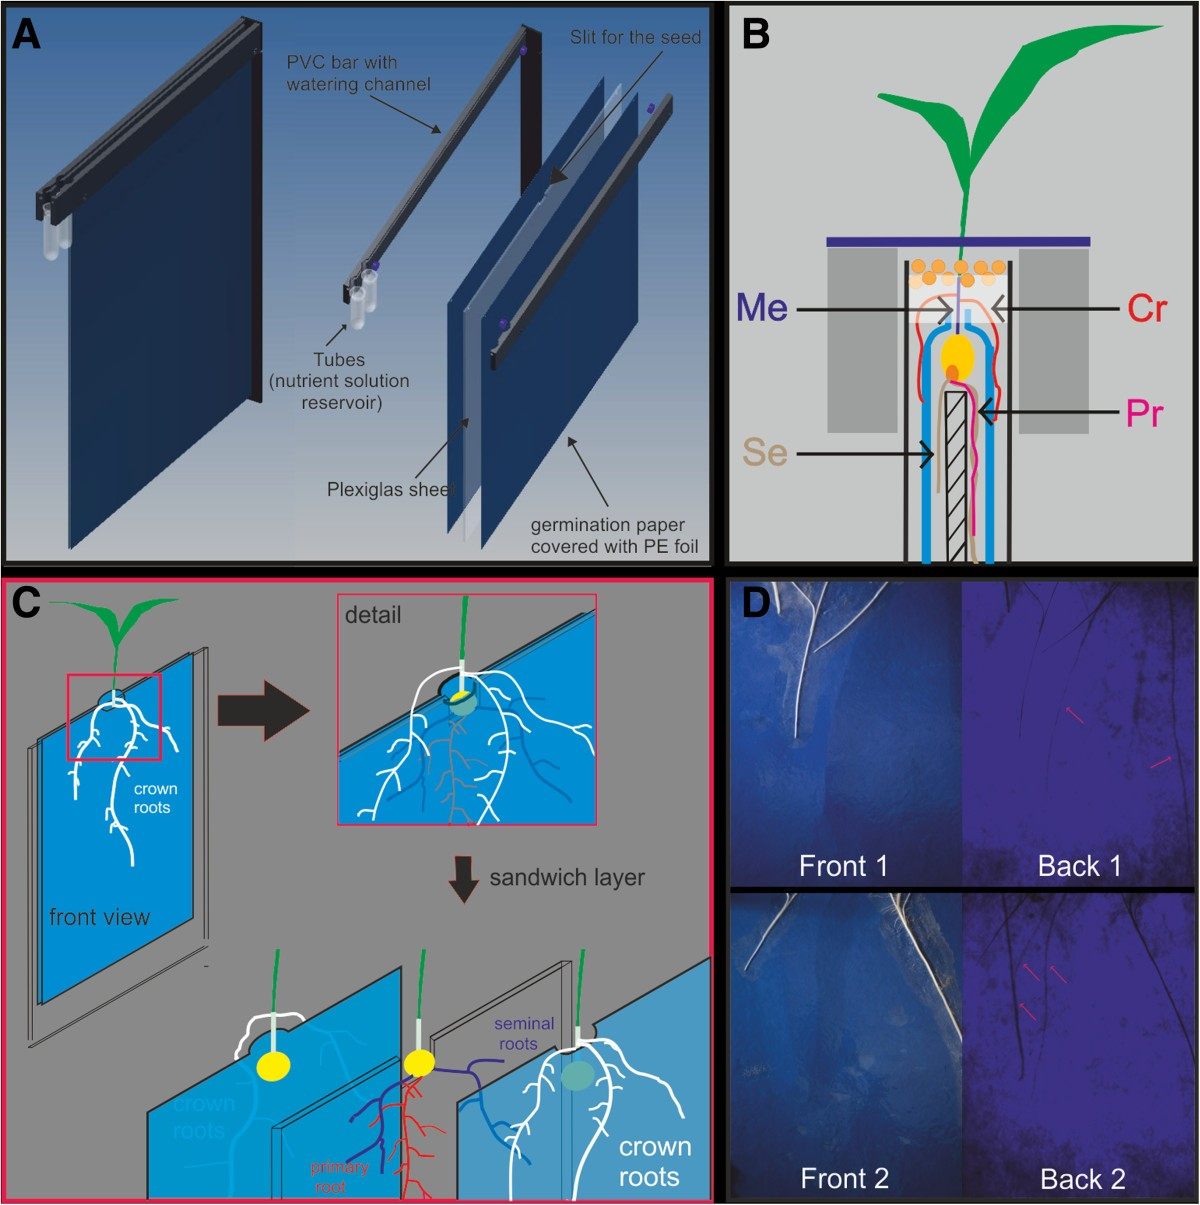 Rhizoslides Paper Based Growth System For Non Destructive High Seed Germination Diagram Monocot Figure 1